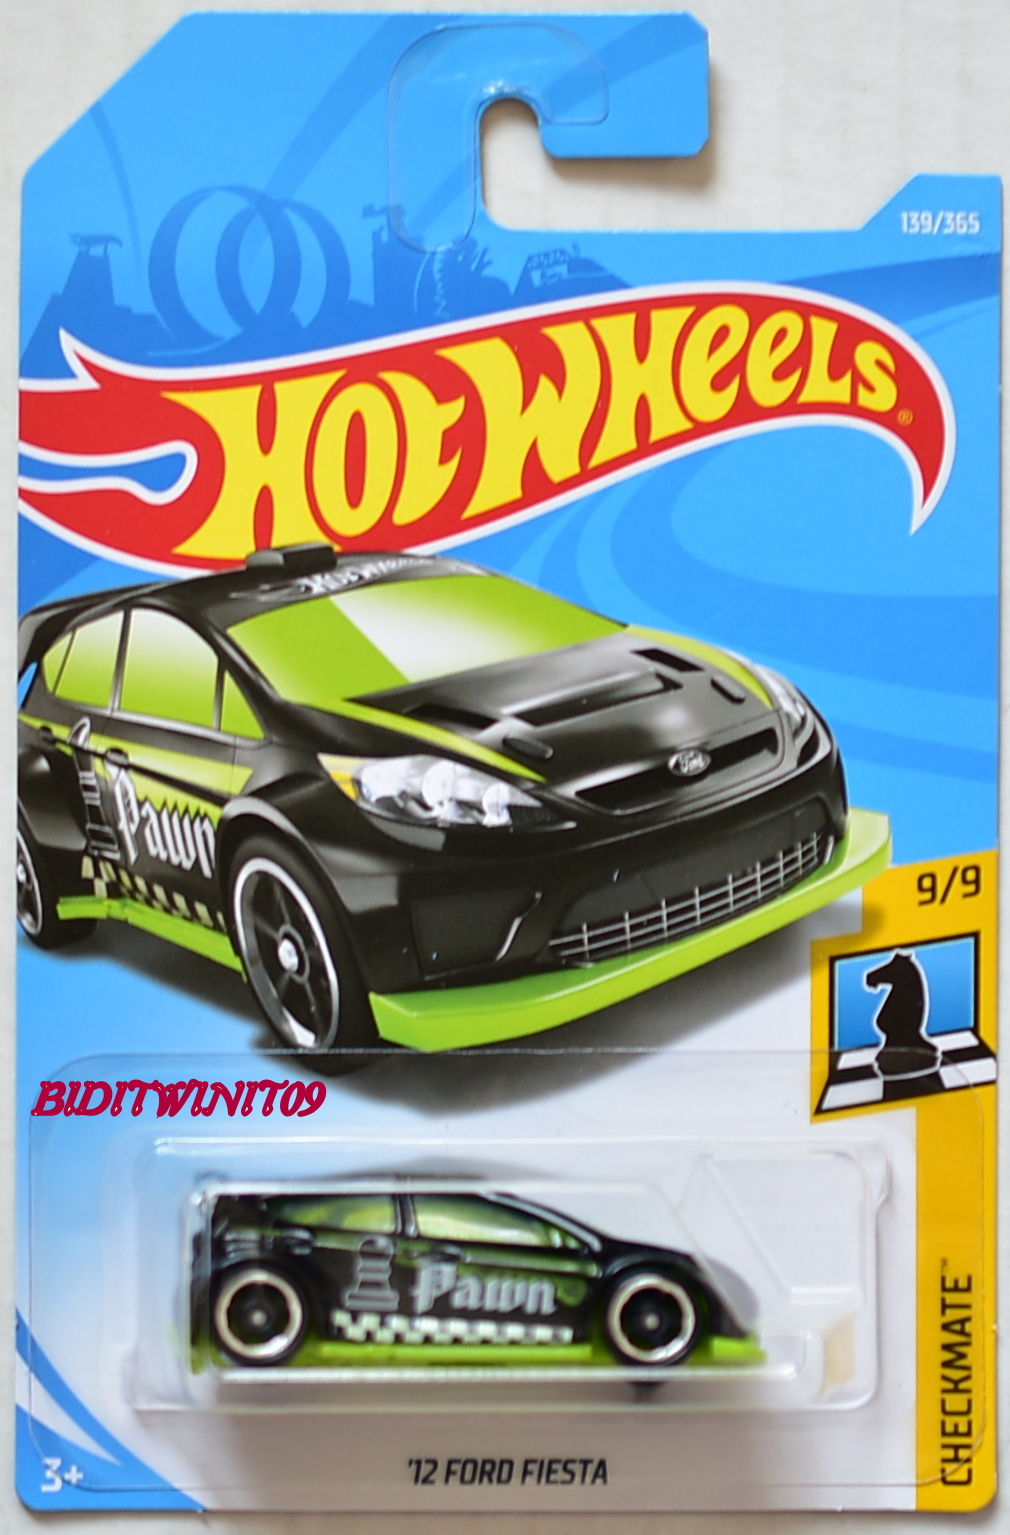 hot wheels 2018 checkmate 39 12 ford fiesta 9 9 black 0007969. Black Bedroom Furniture Sets. Home Design Ideas